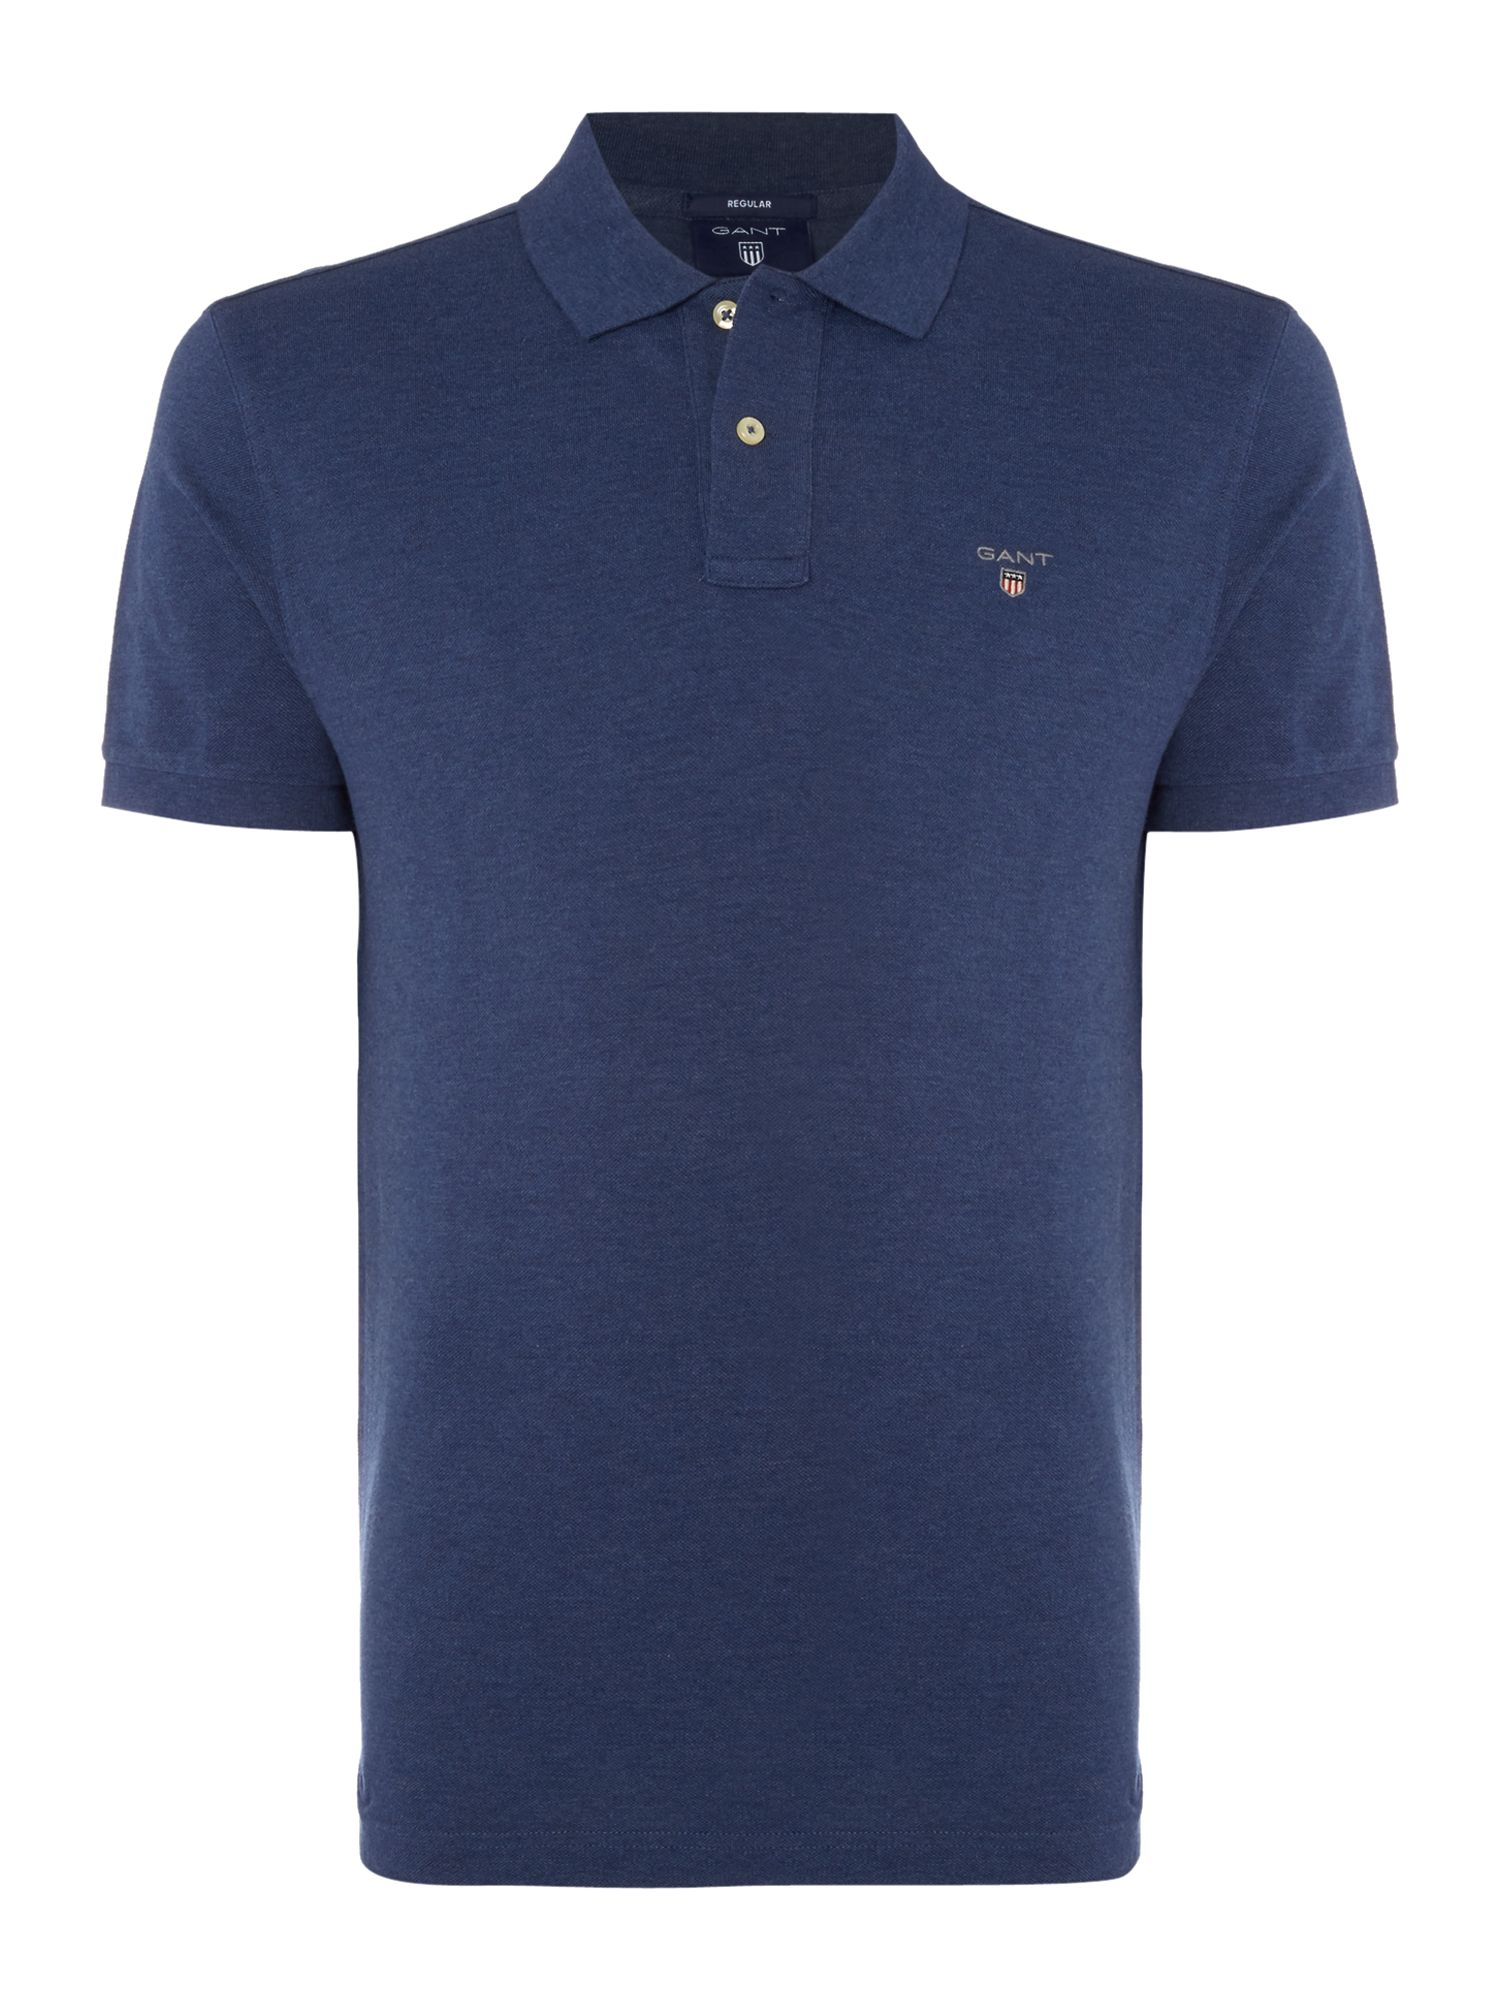 Men's Gant Original Pique Short Sleeve Polo, Melange Blue